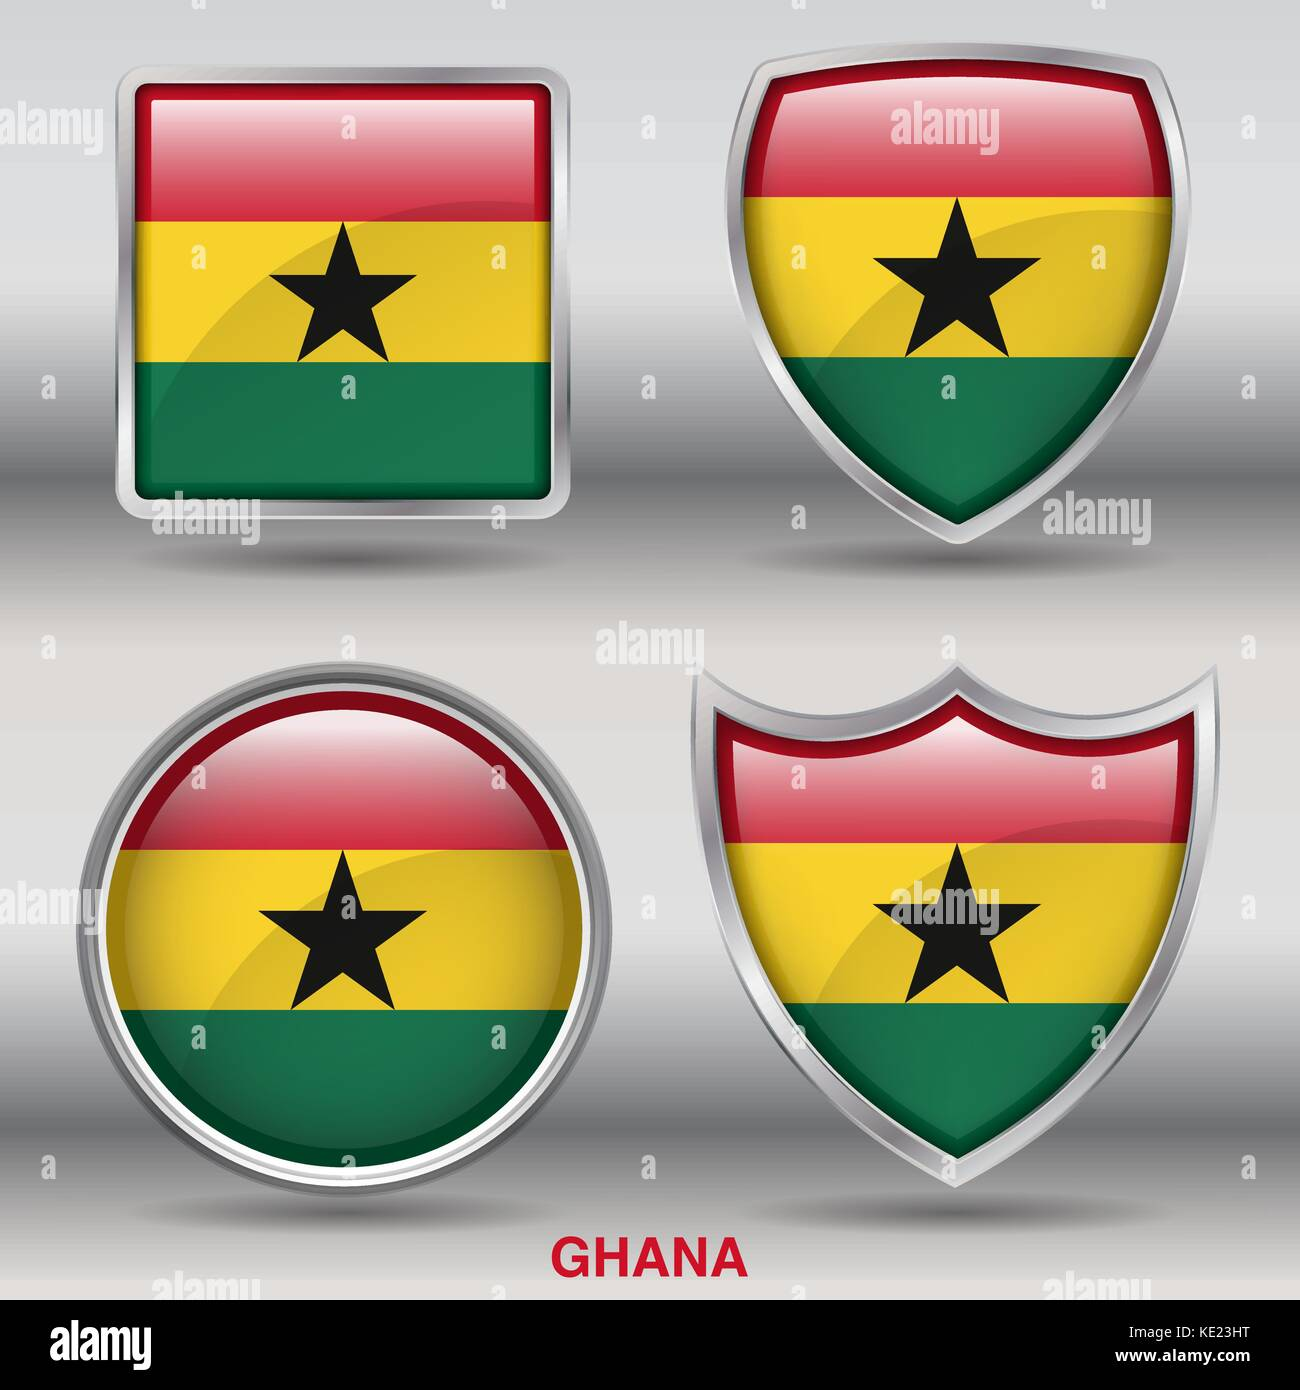 Ghana Flag - 4 shapes Flags States Country in the World with clipping path - Stock Vector